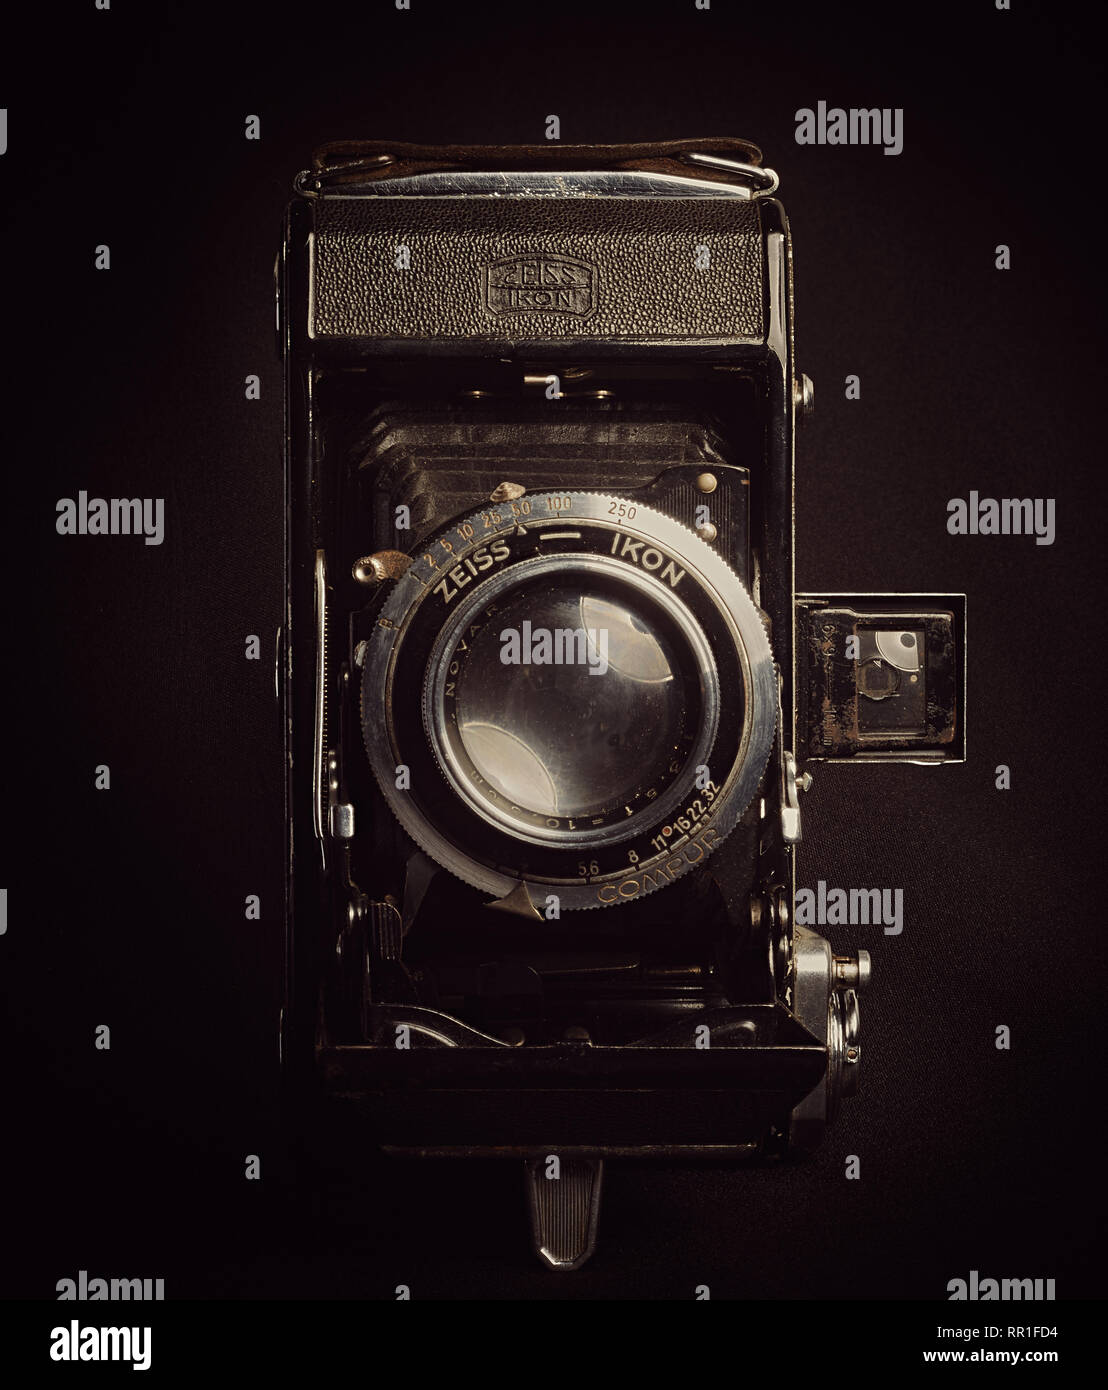 Vertical aspect front view of a vintage bellows film camera against a black background. - Stock Image